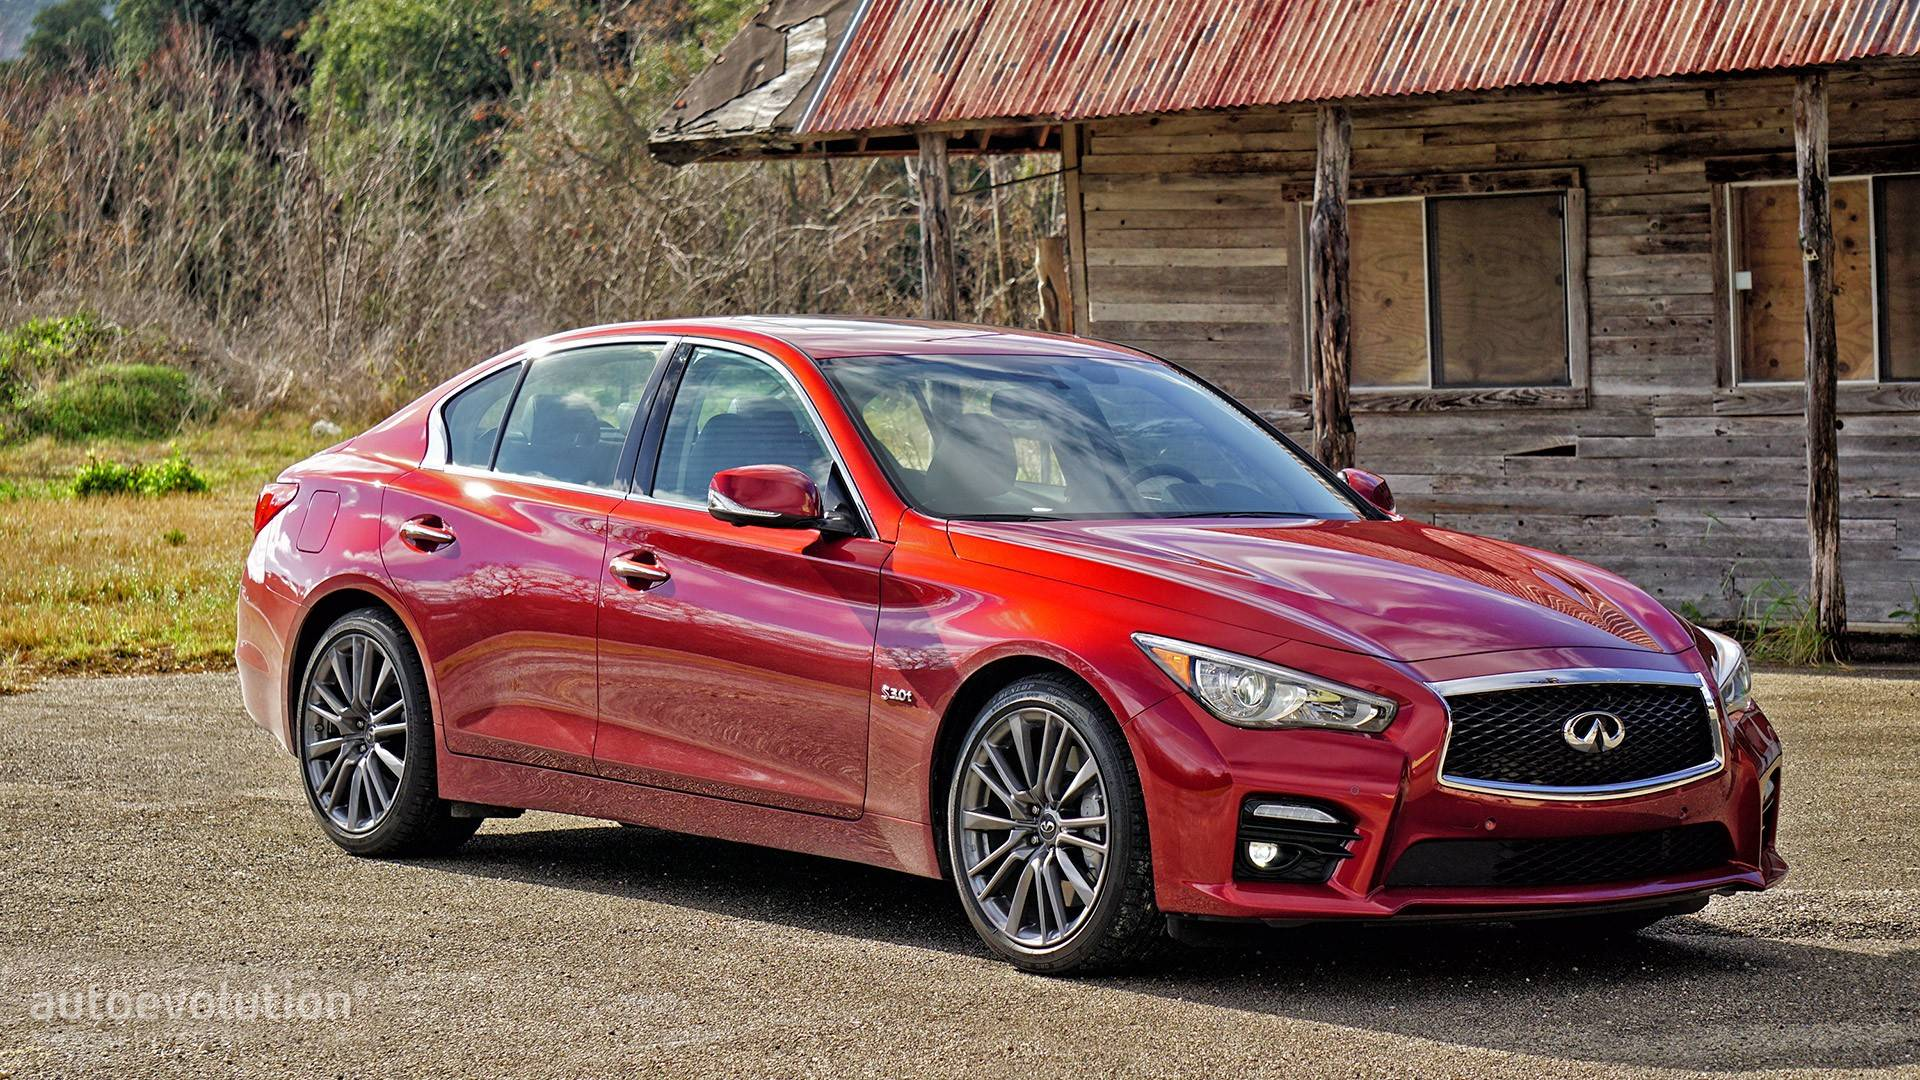 2016 Infiniti Q50 4-Door Sedan 2.0t Base AWD